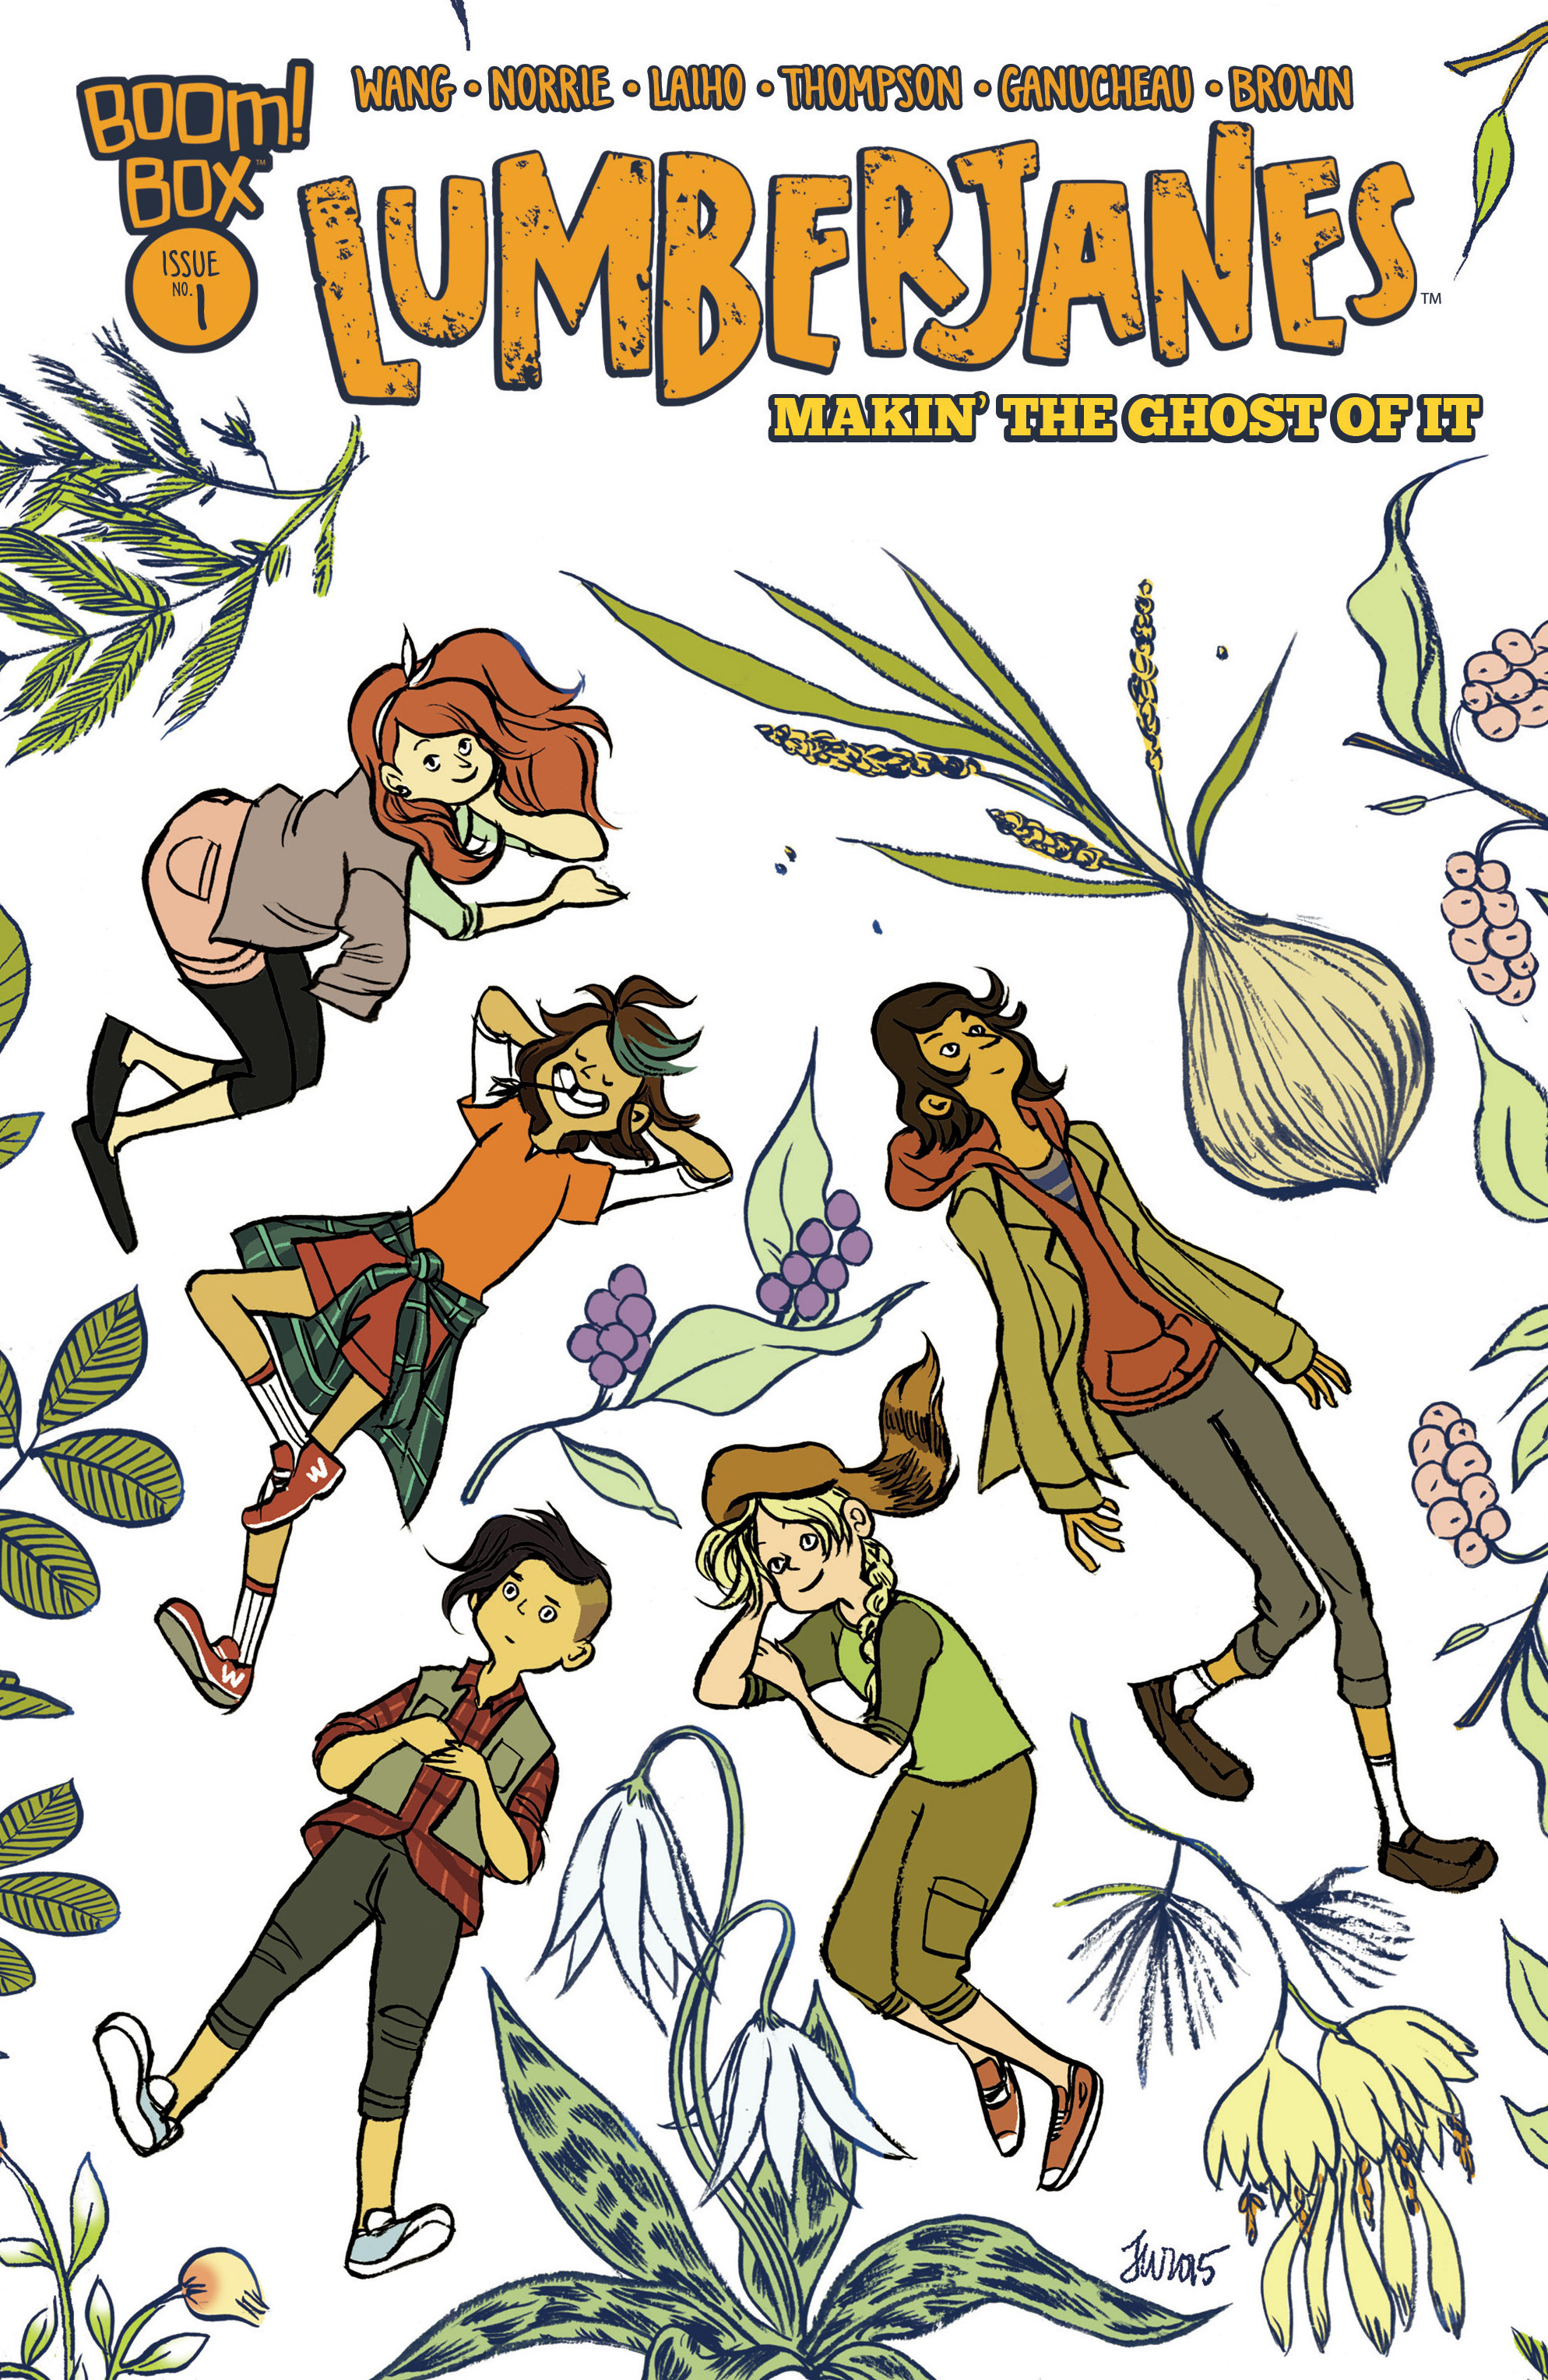 Lumberjanes: Makin the Ghost of It 2016 Special Full Page 1